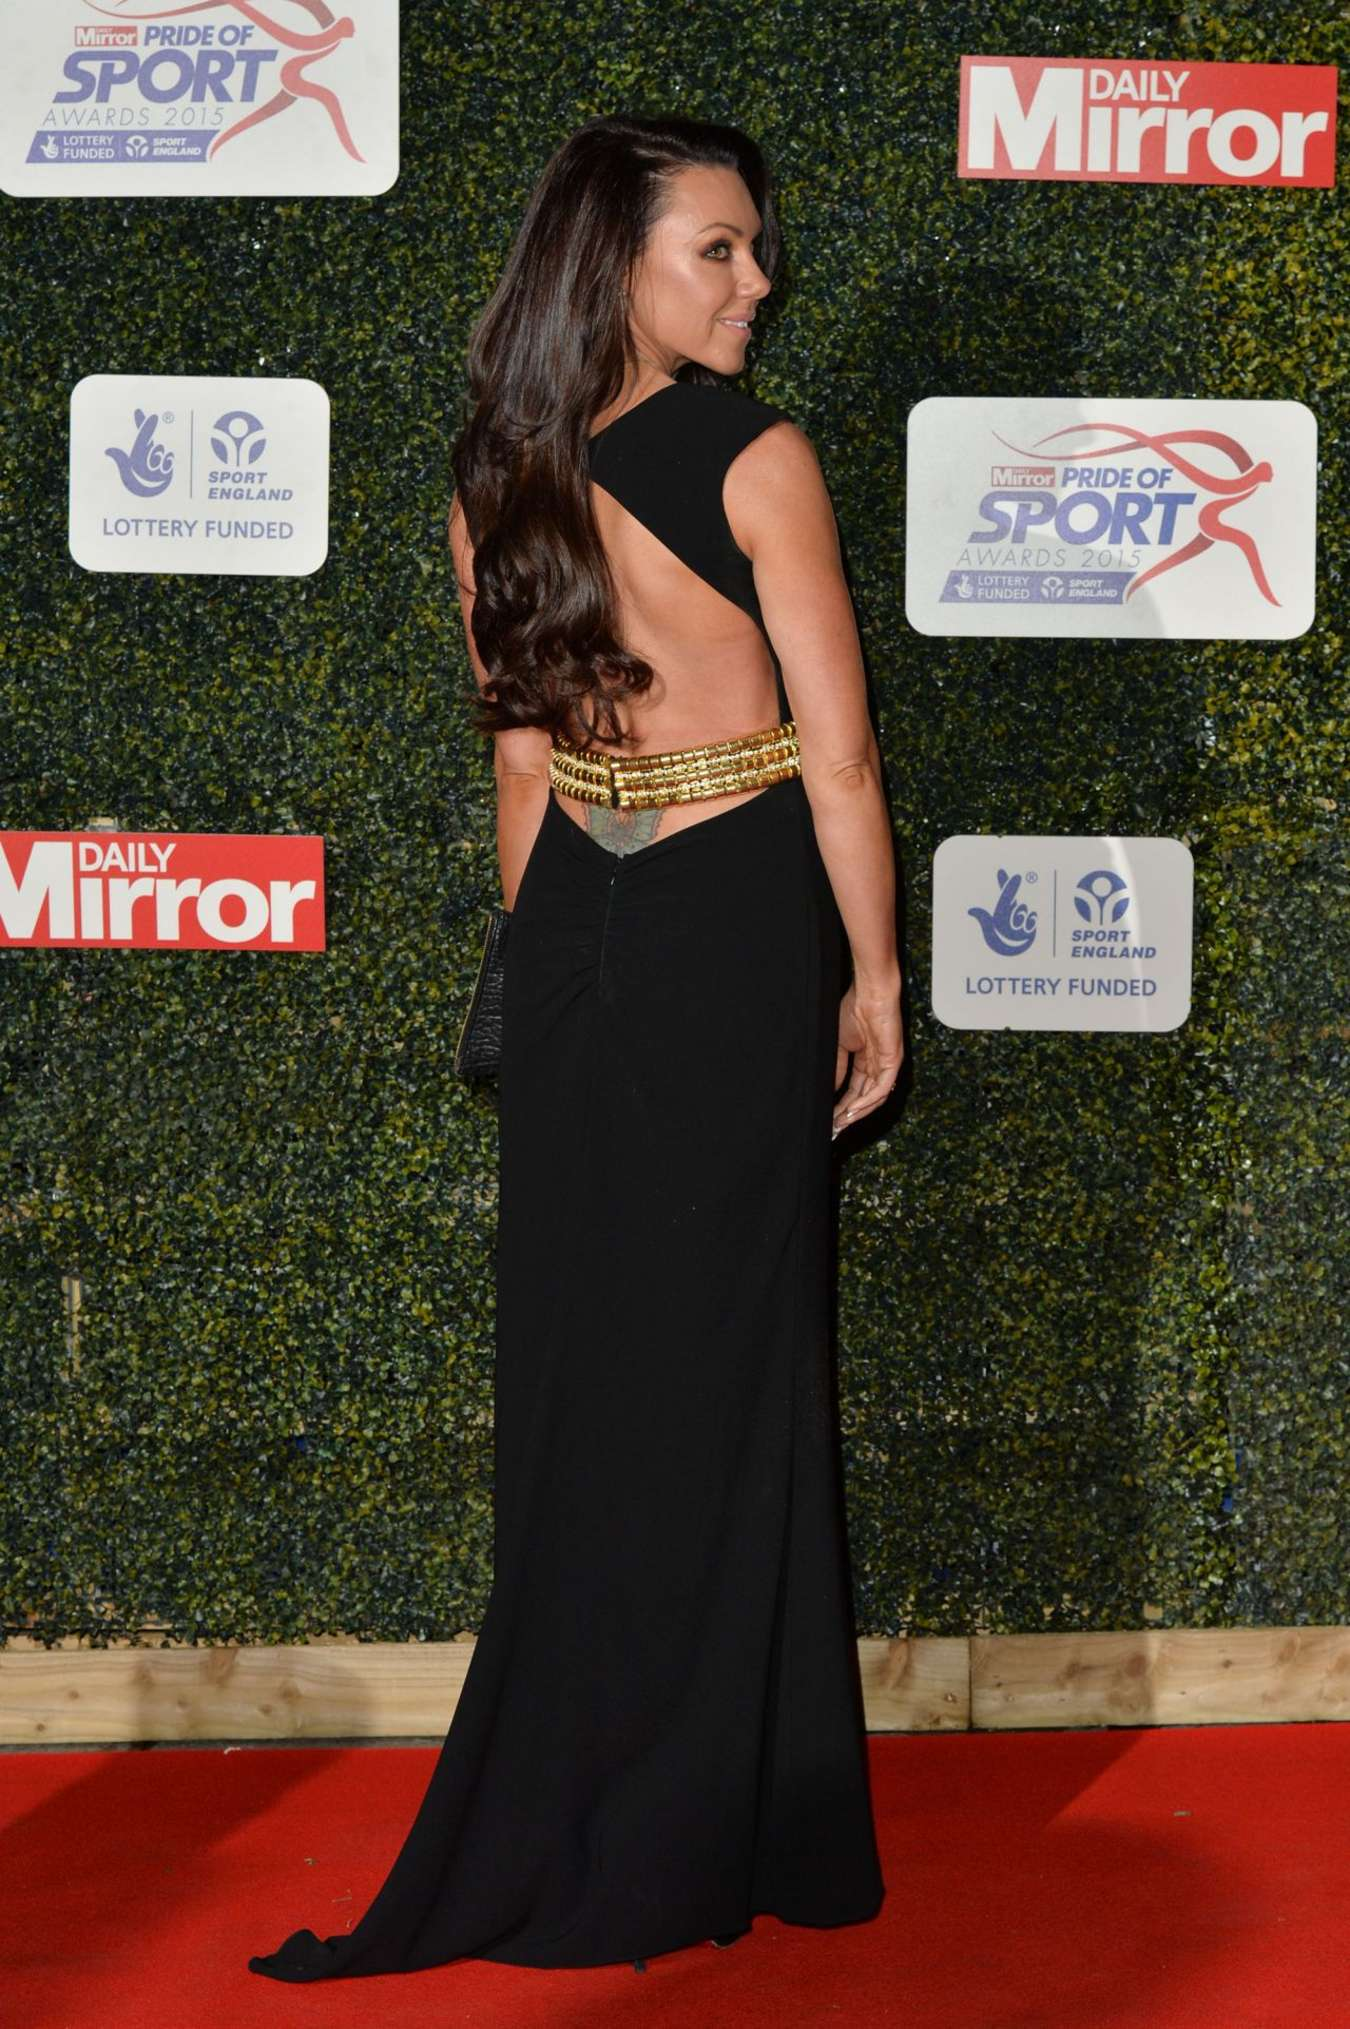 Michelle Heaton Daily Mirror Pride of Sport Awards in London